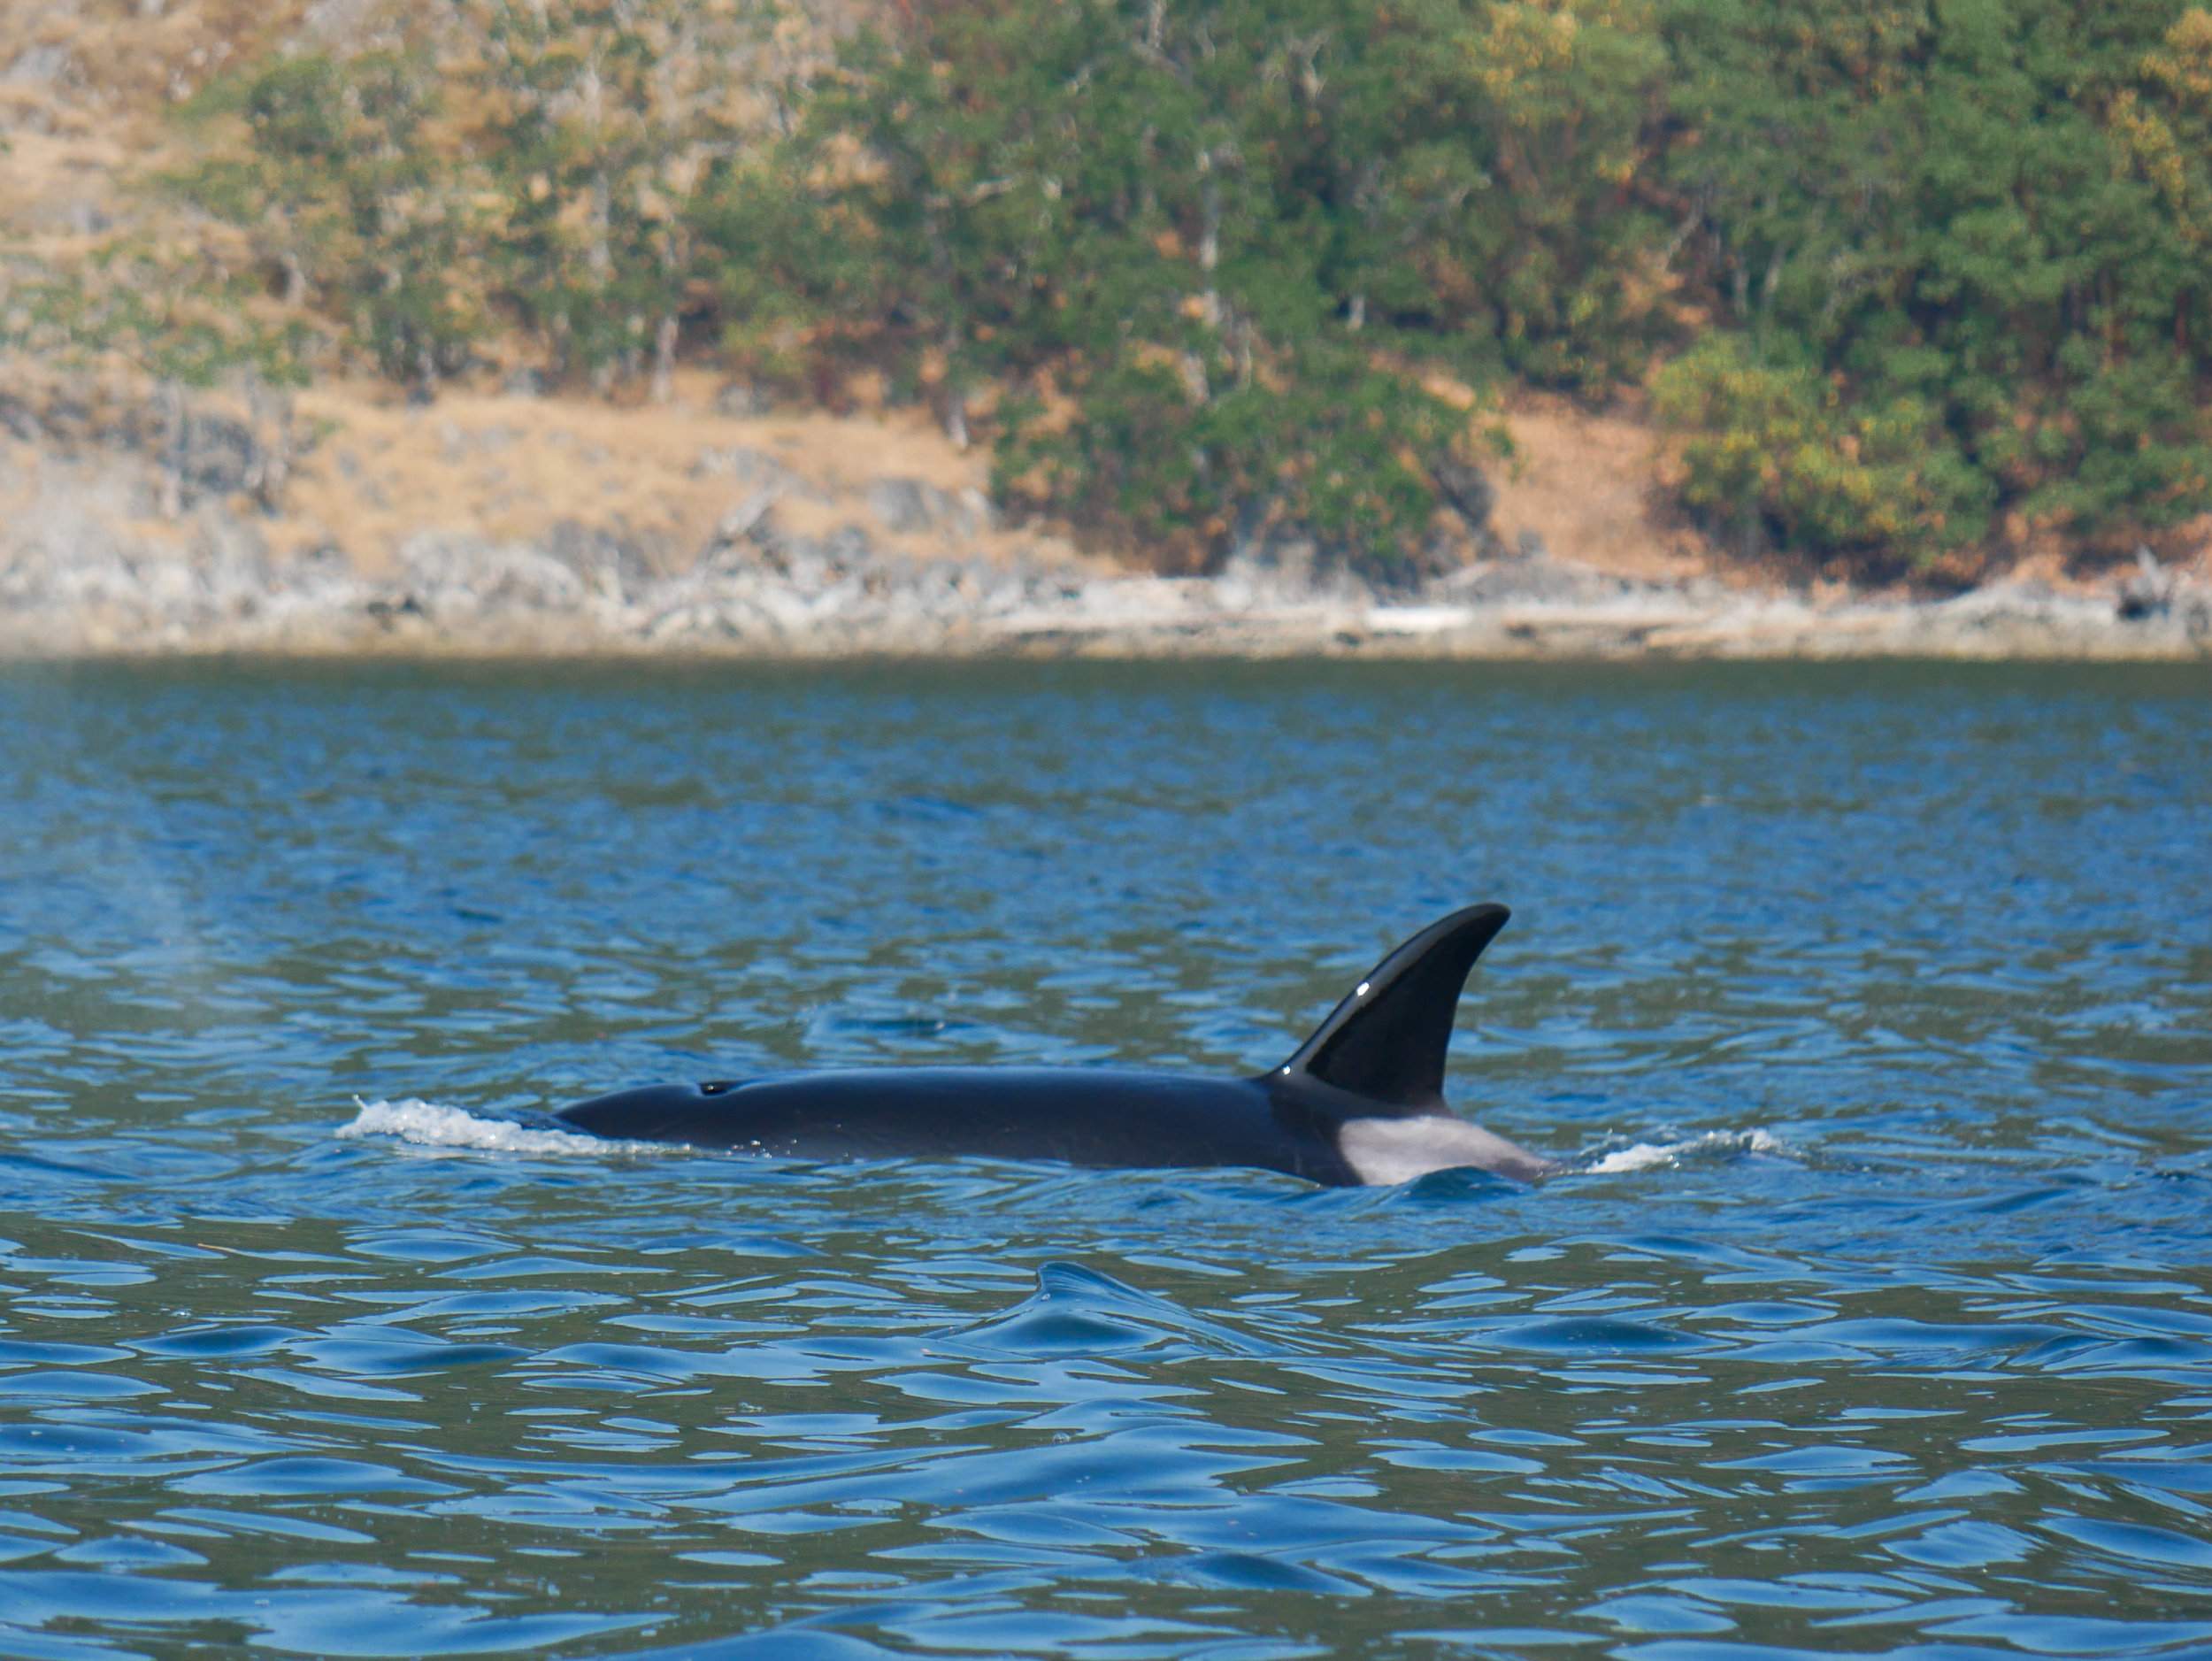 The orcas look so shiny once they've surfaced and the sun reflects off their west bodies. Photo by Val Watson.